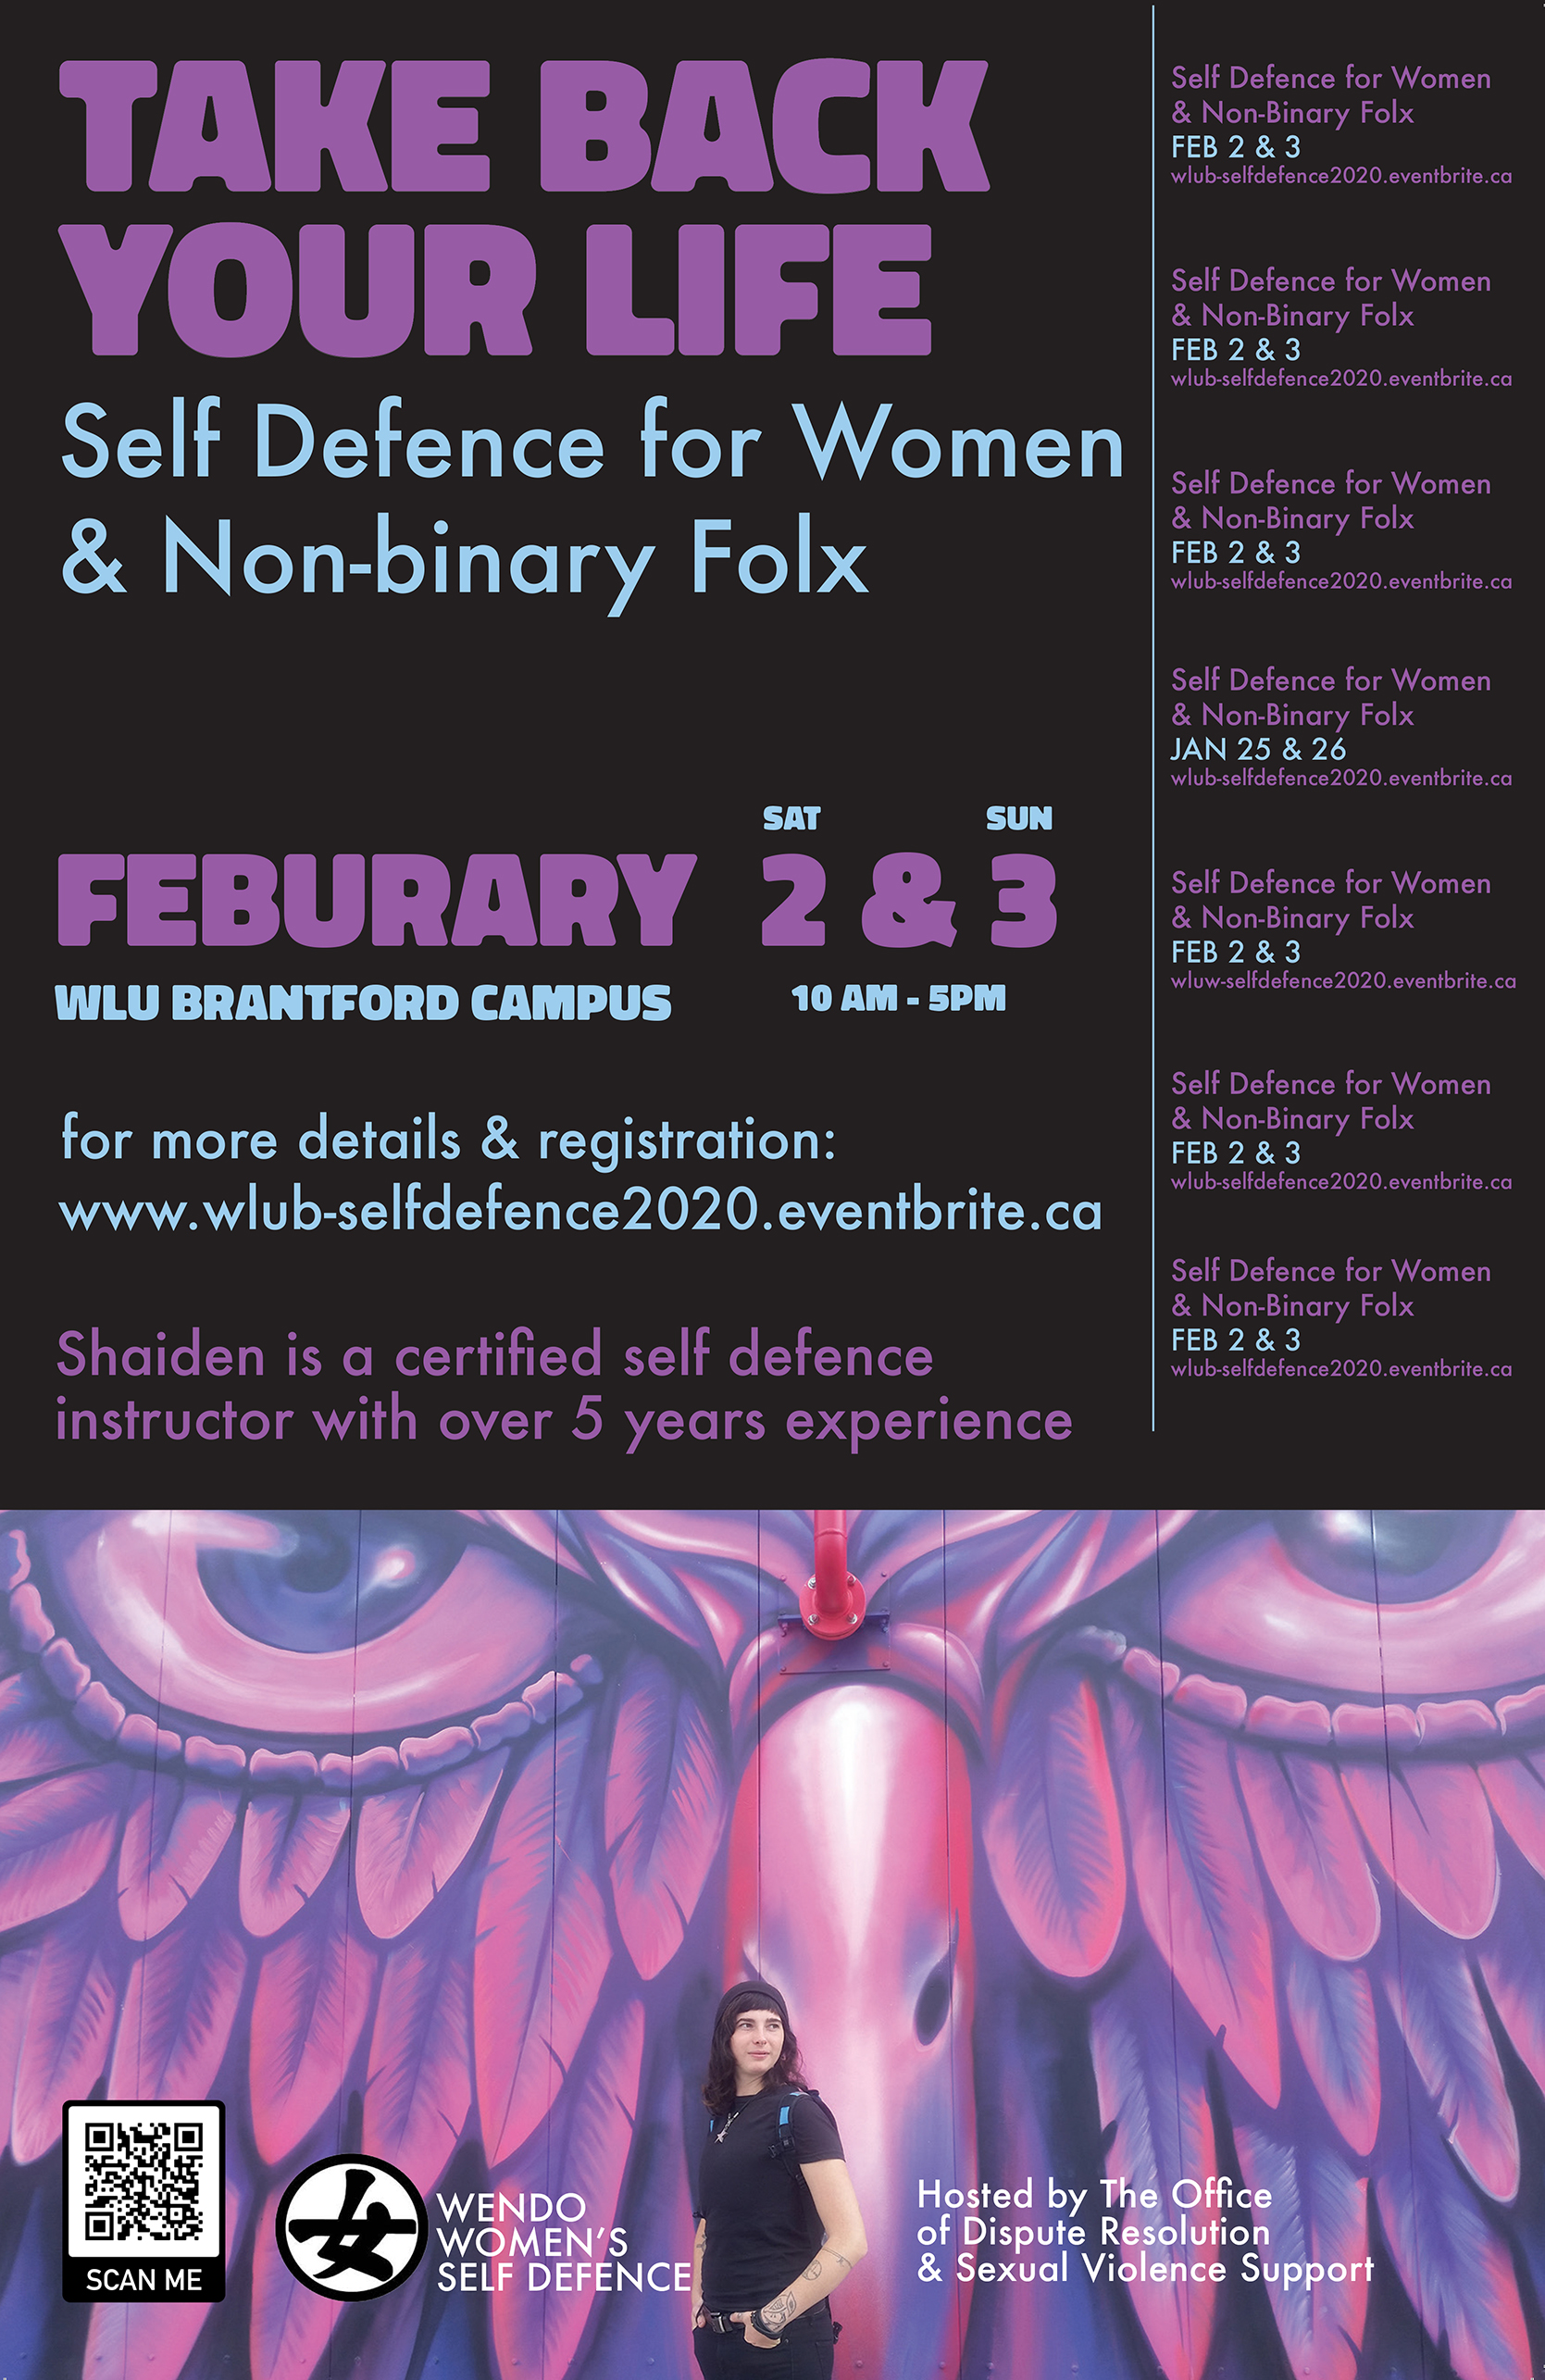 self defense workshop poster